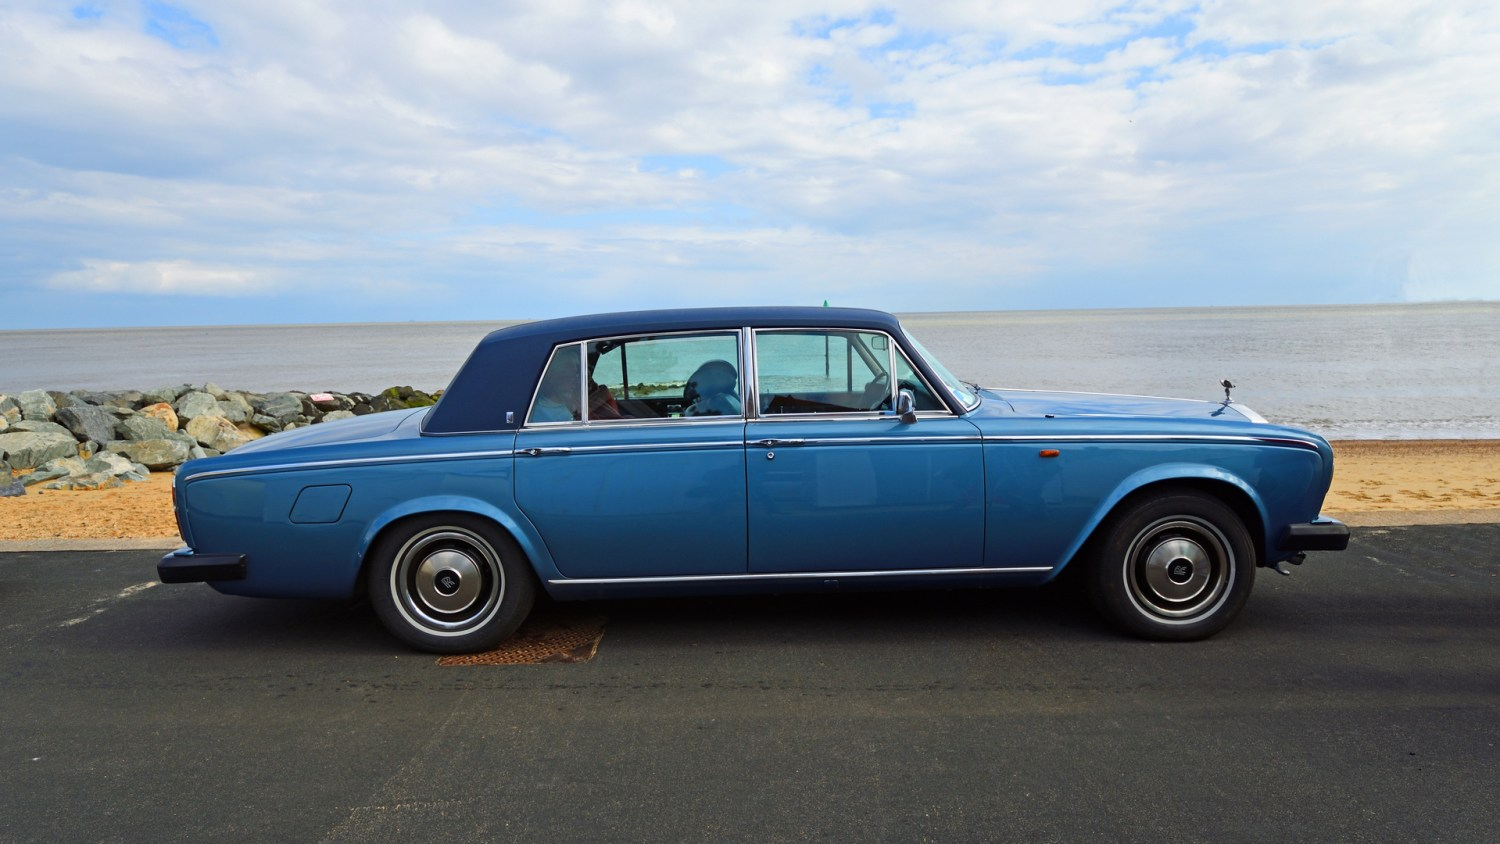 Classic cars at the seaside